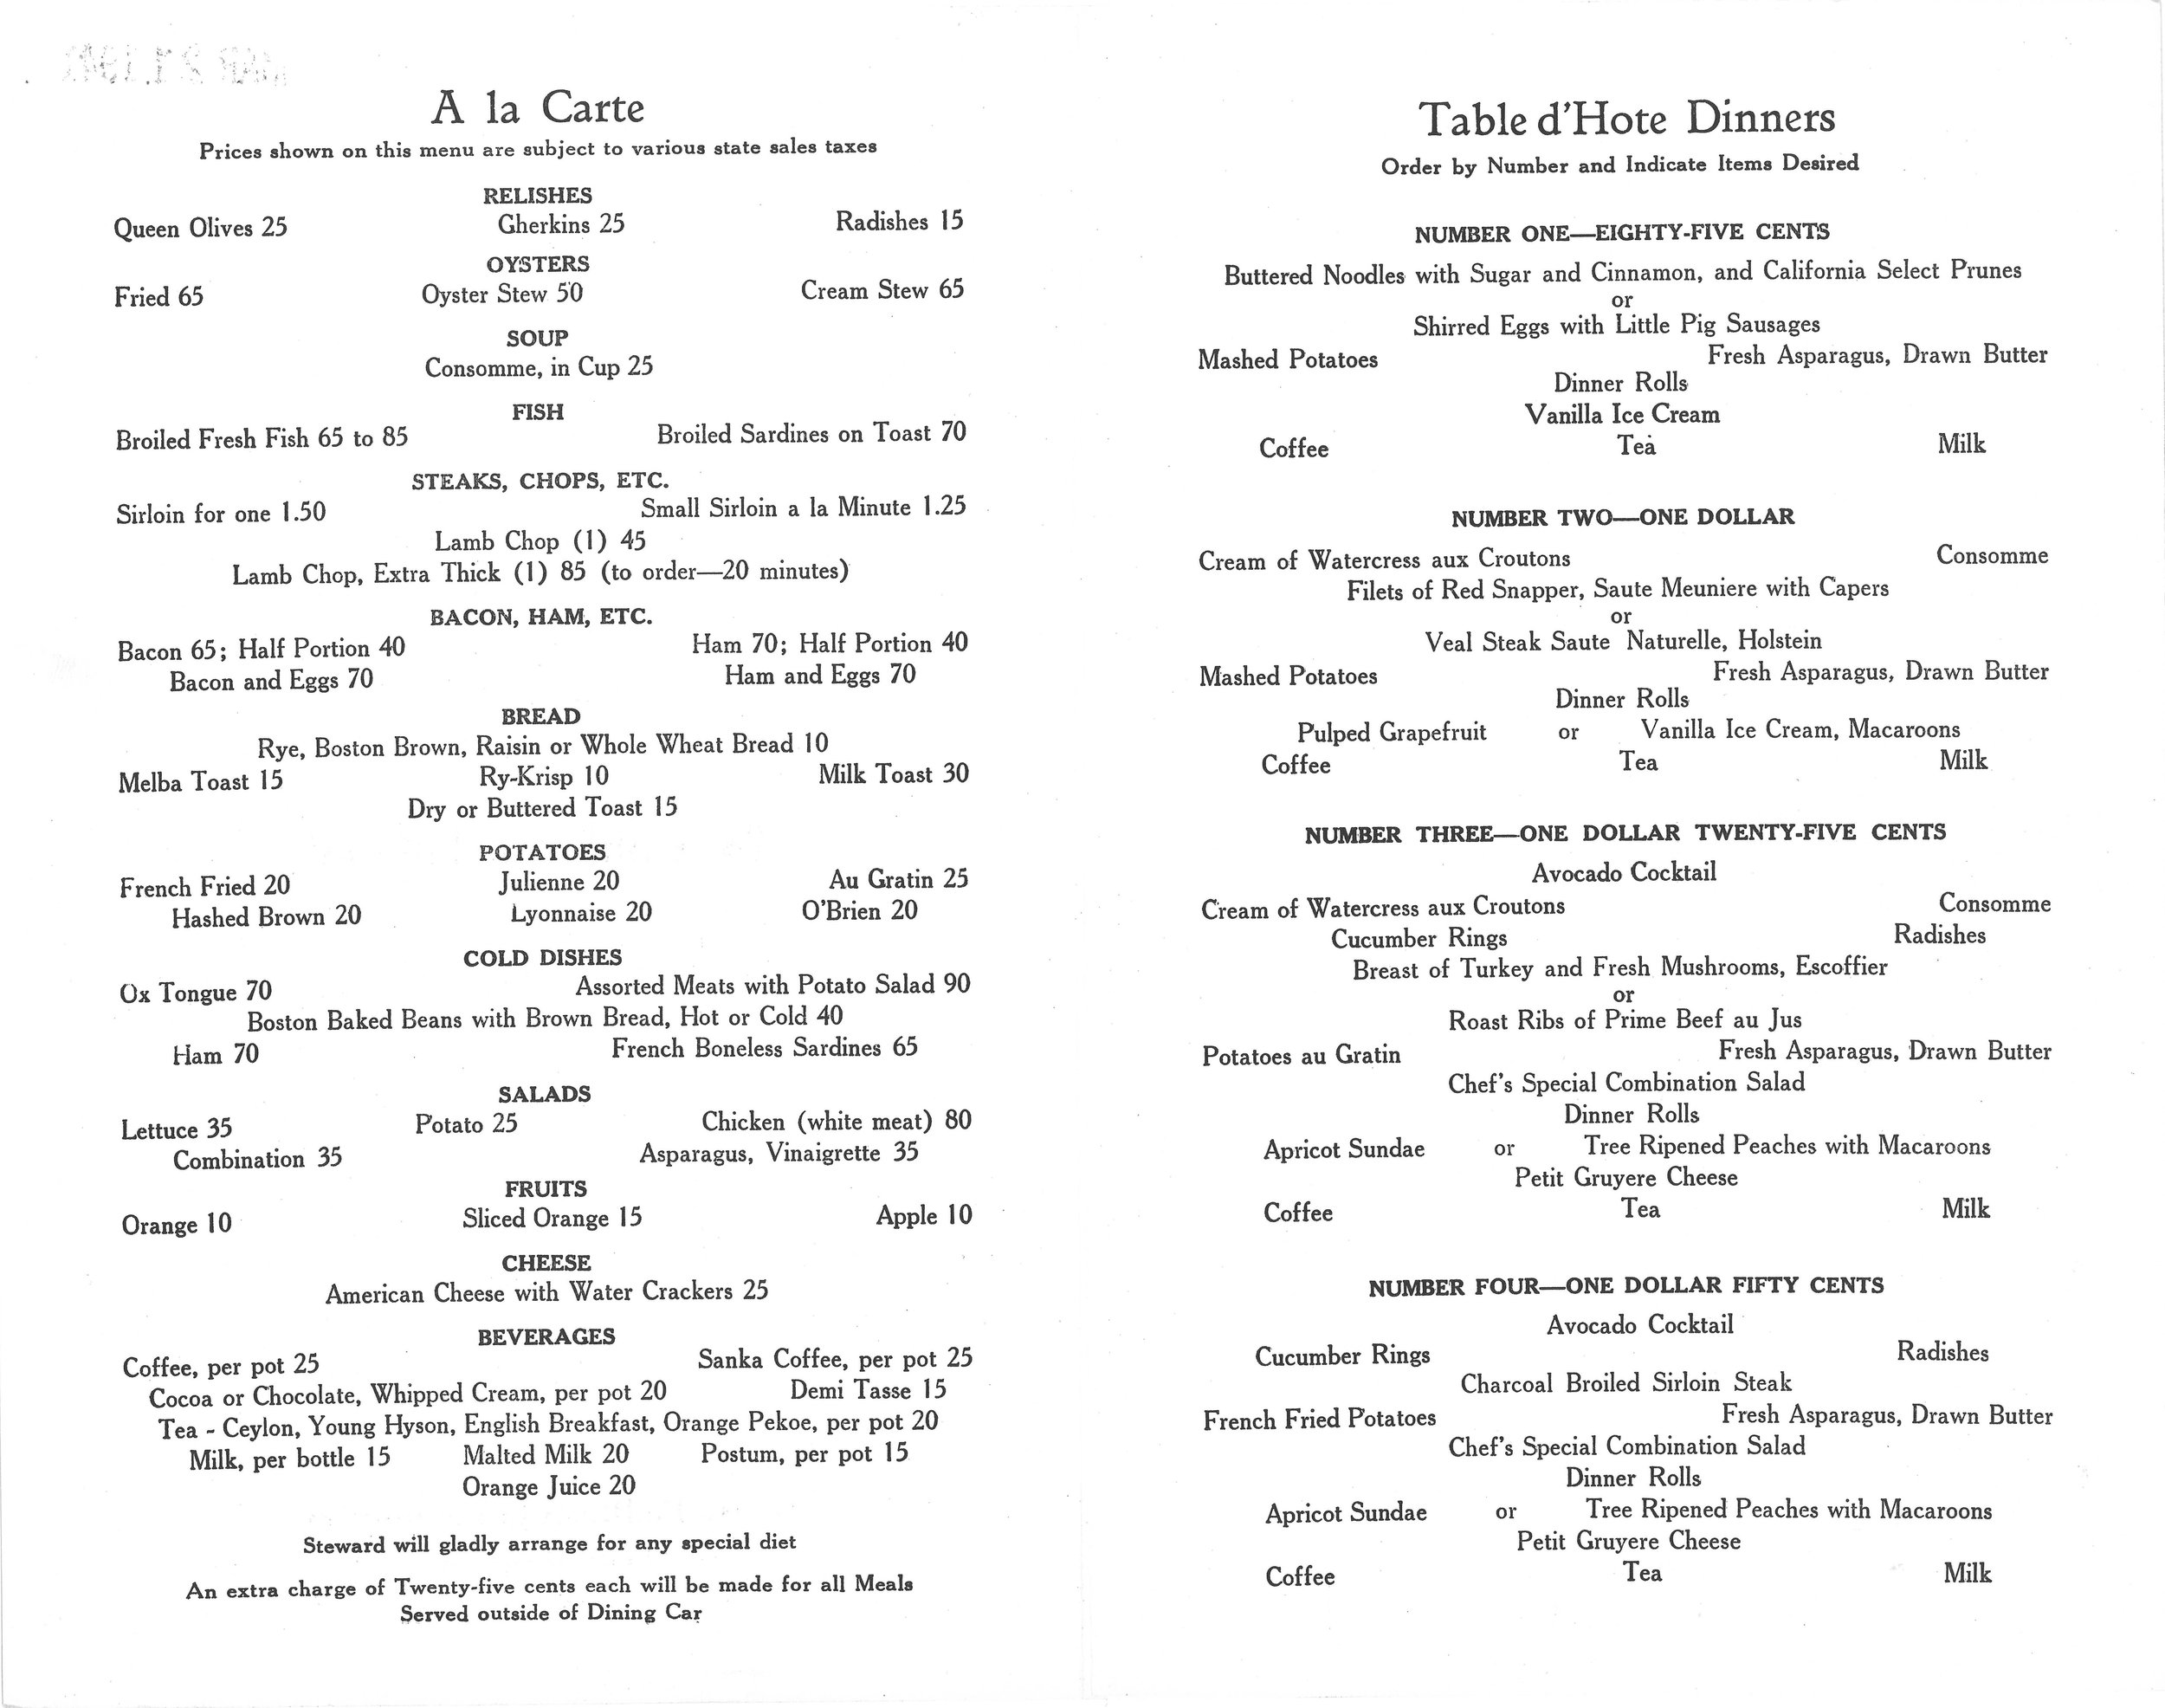 Santa Fe The California Limited Dinner Menu May 1941- 2.jpg